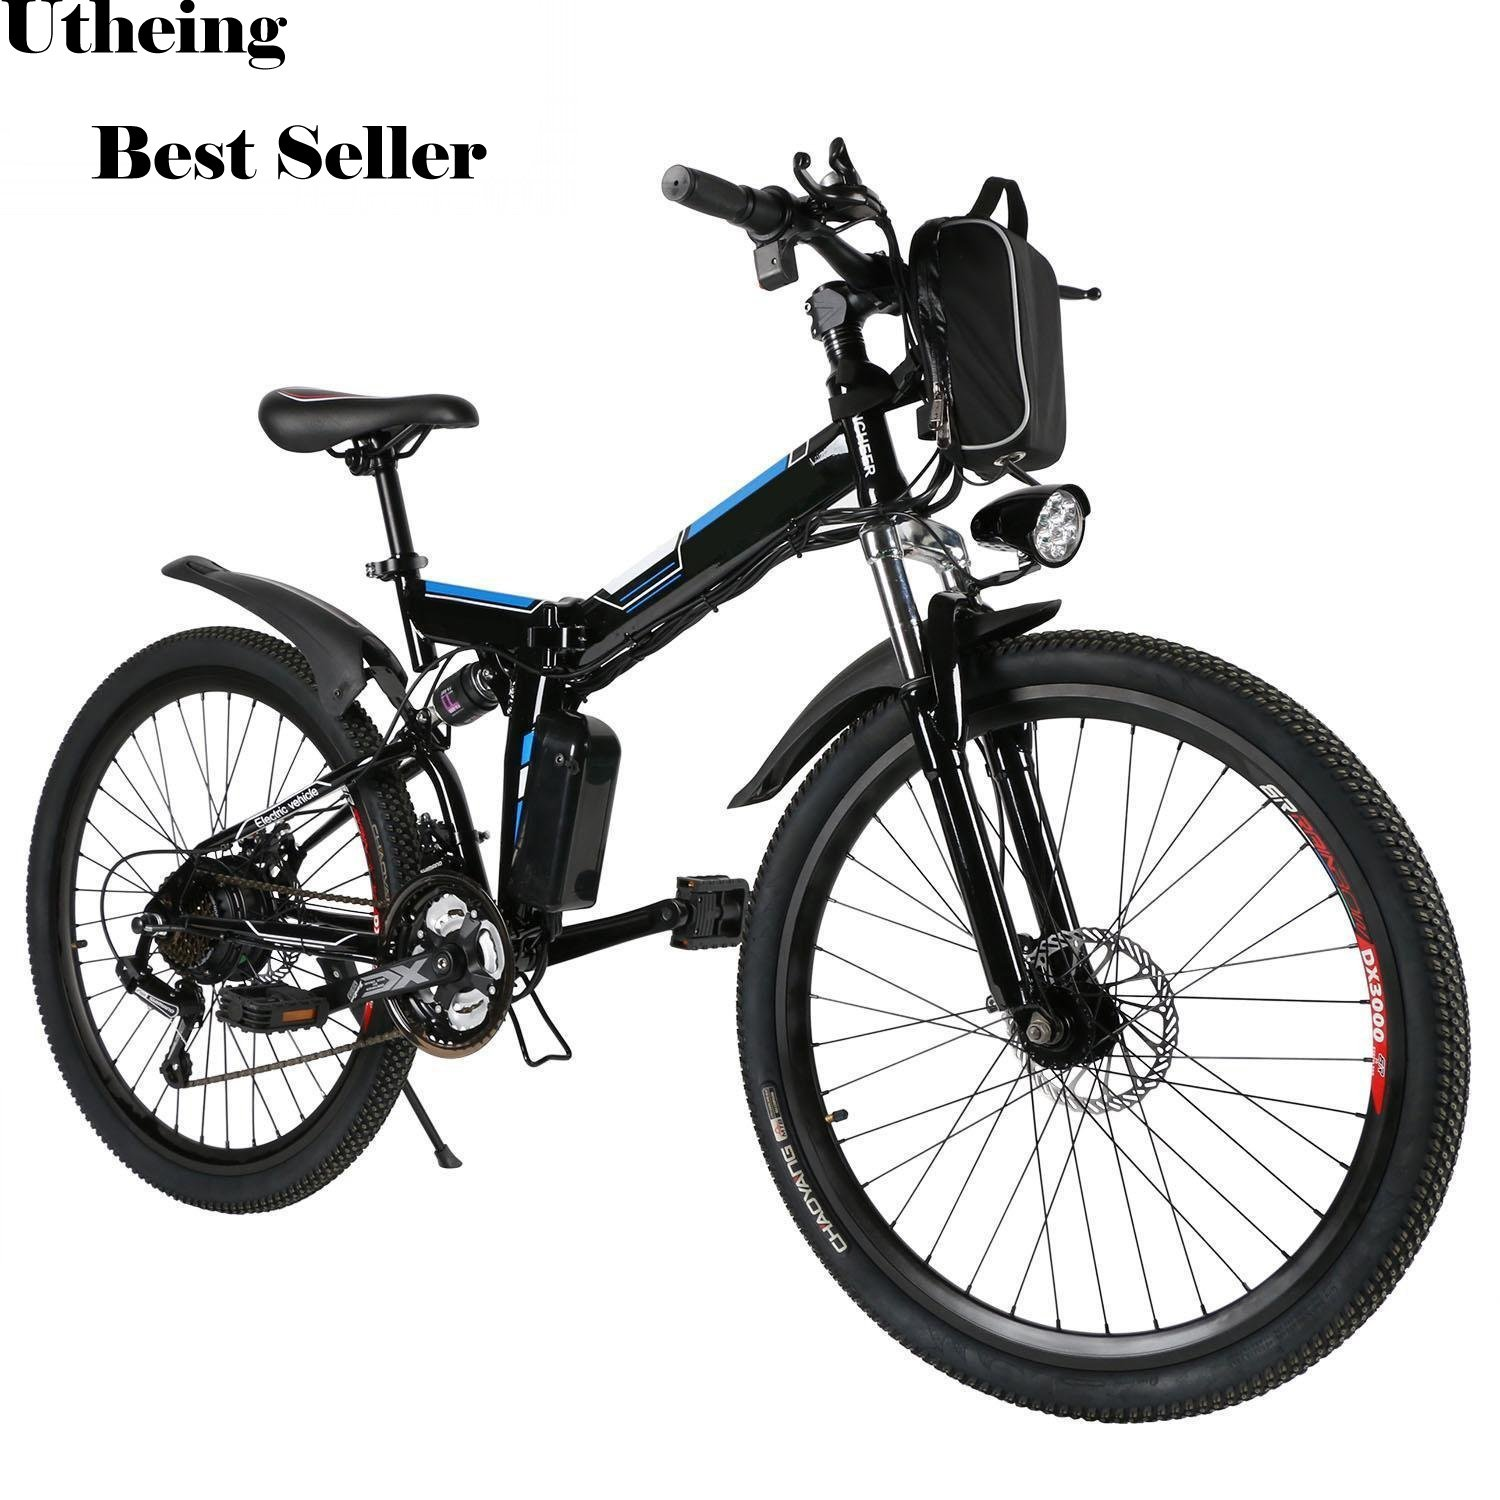 Best Electric Mountain Bike >> Amazon Com Utheing E Bike Folding Electric Mountain Bike 36v 250w